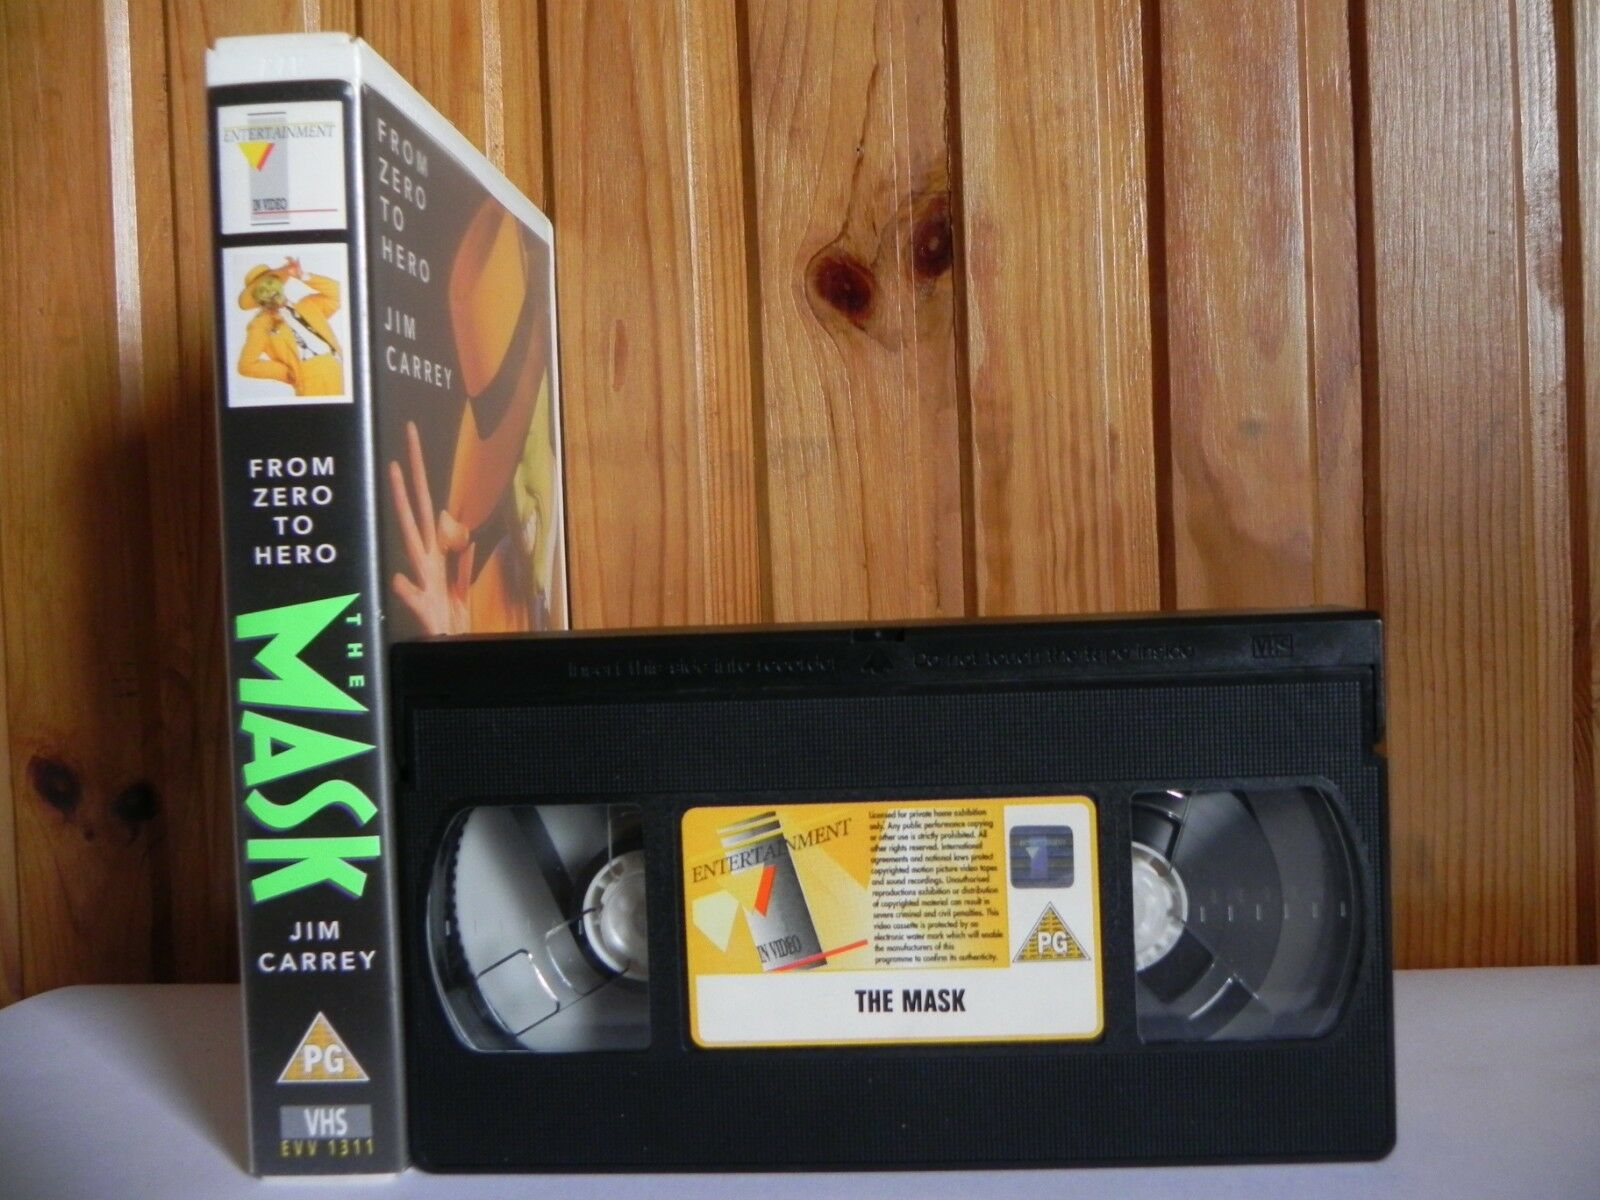 The Mask: Original Large Box - Criminal Comedy (Rental Video) - Jim Carrey - VHS